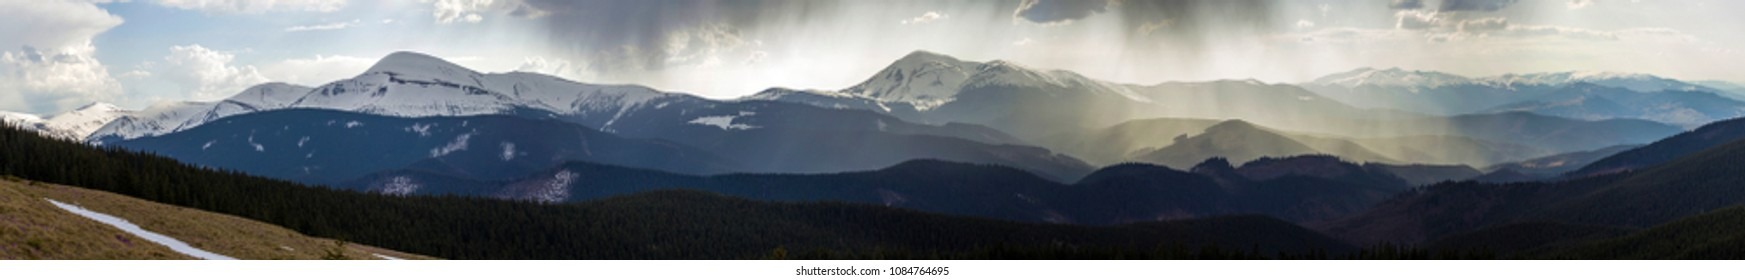 Breathtaking panoramic view of magnificent foggy Carpathian mountains, covered with ever-green forest on misty quiet morning or evening under dark cloudy sky. Mountains snow covered tops in distance.